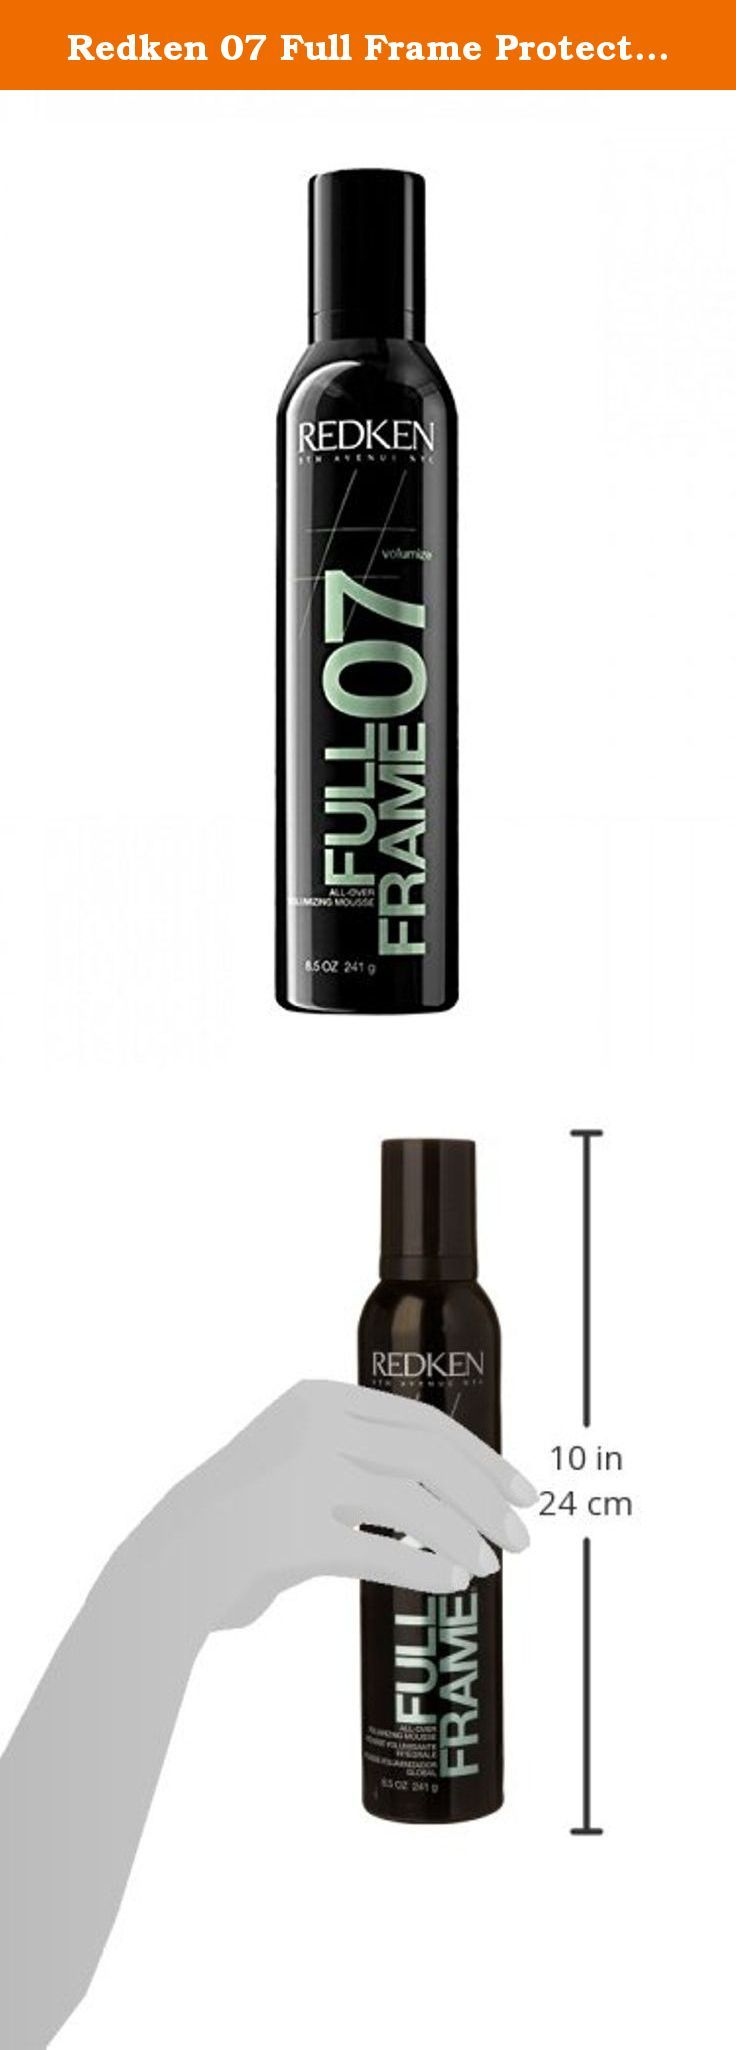 Redken 07 Full Frame Protective Volumizing Mousse, 8.5 Ounce. Redken ...